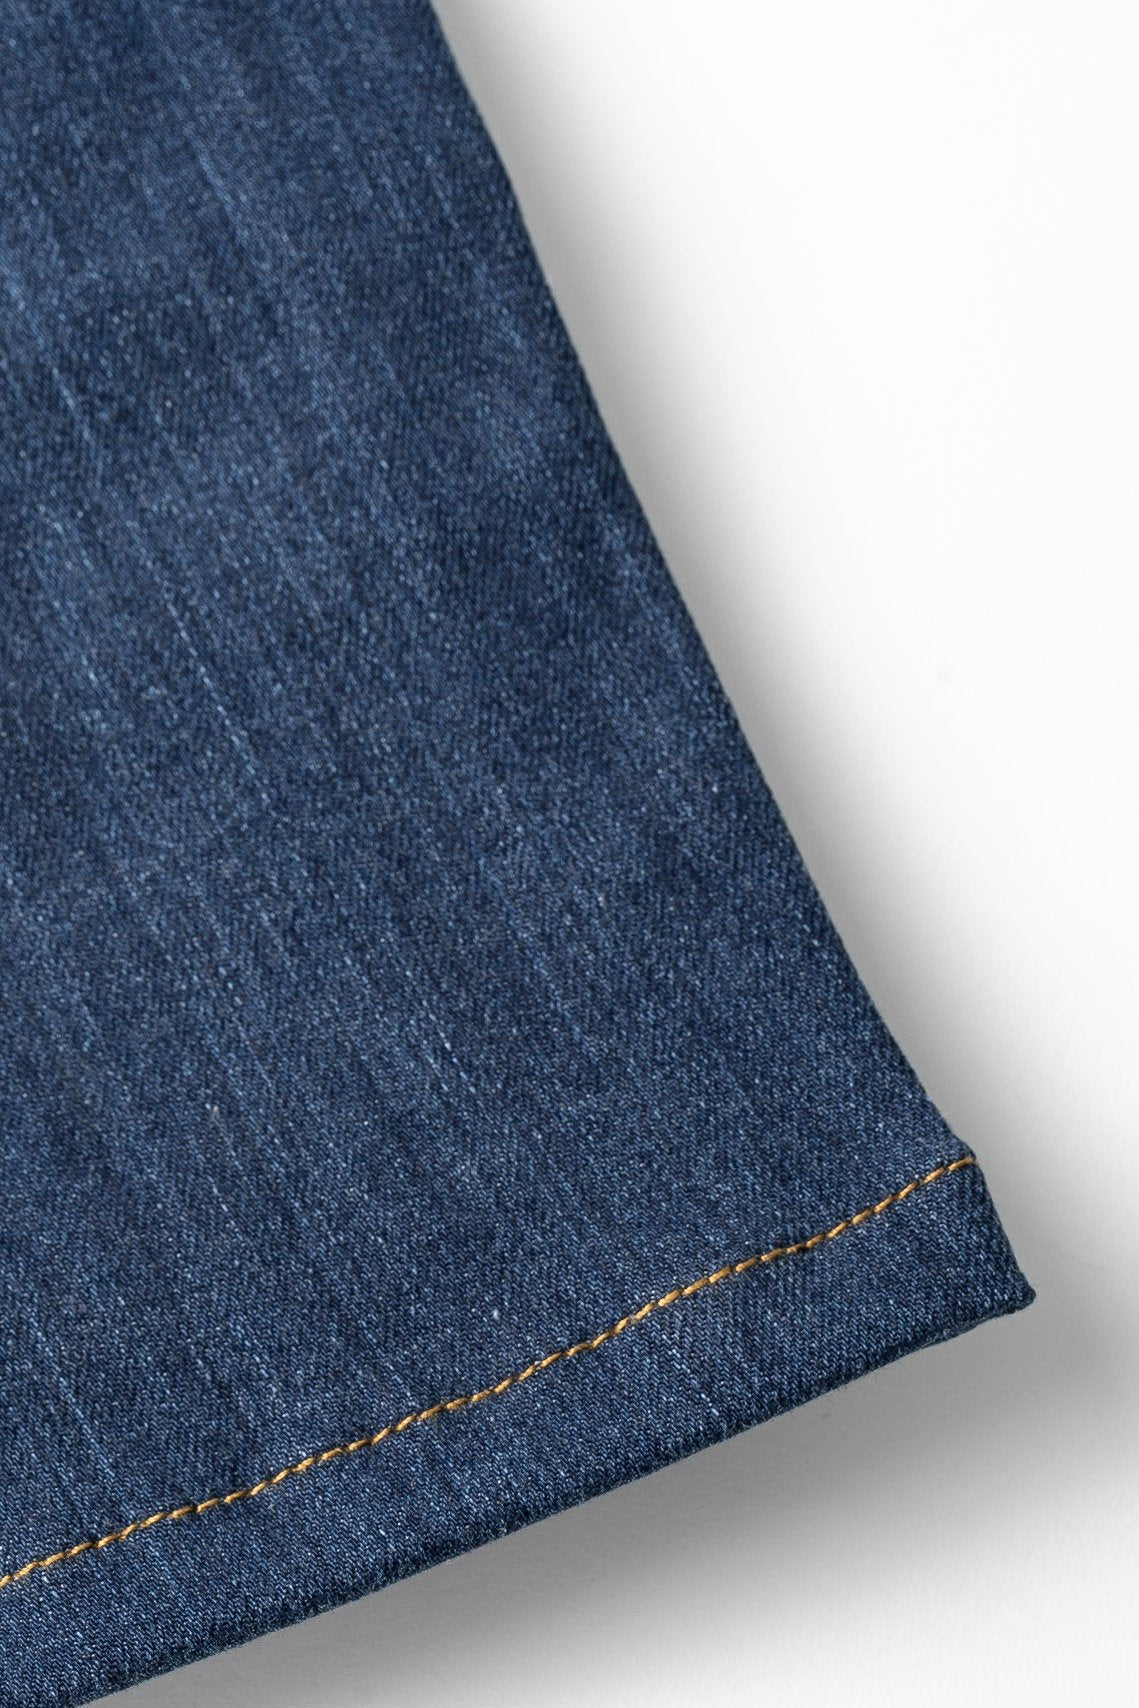 More images: closeup of bottom hem